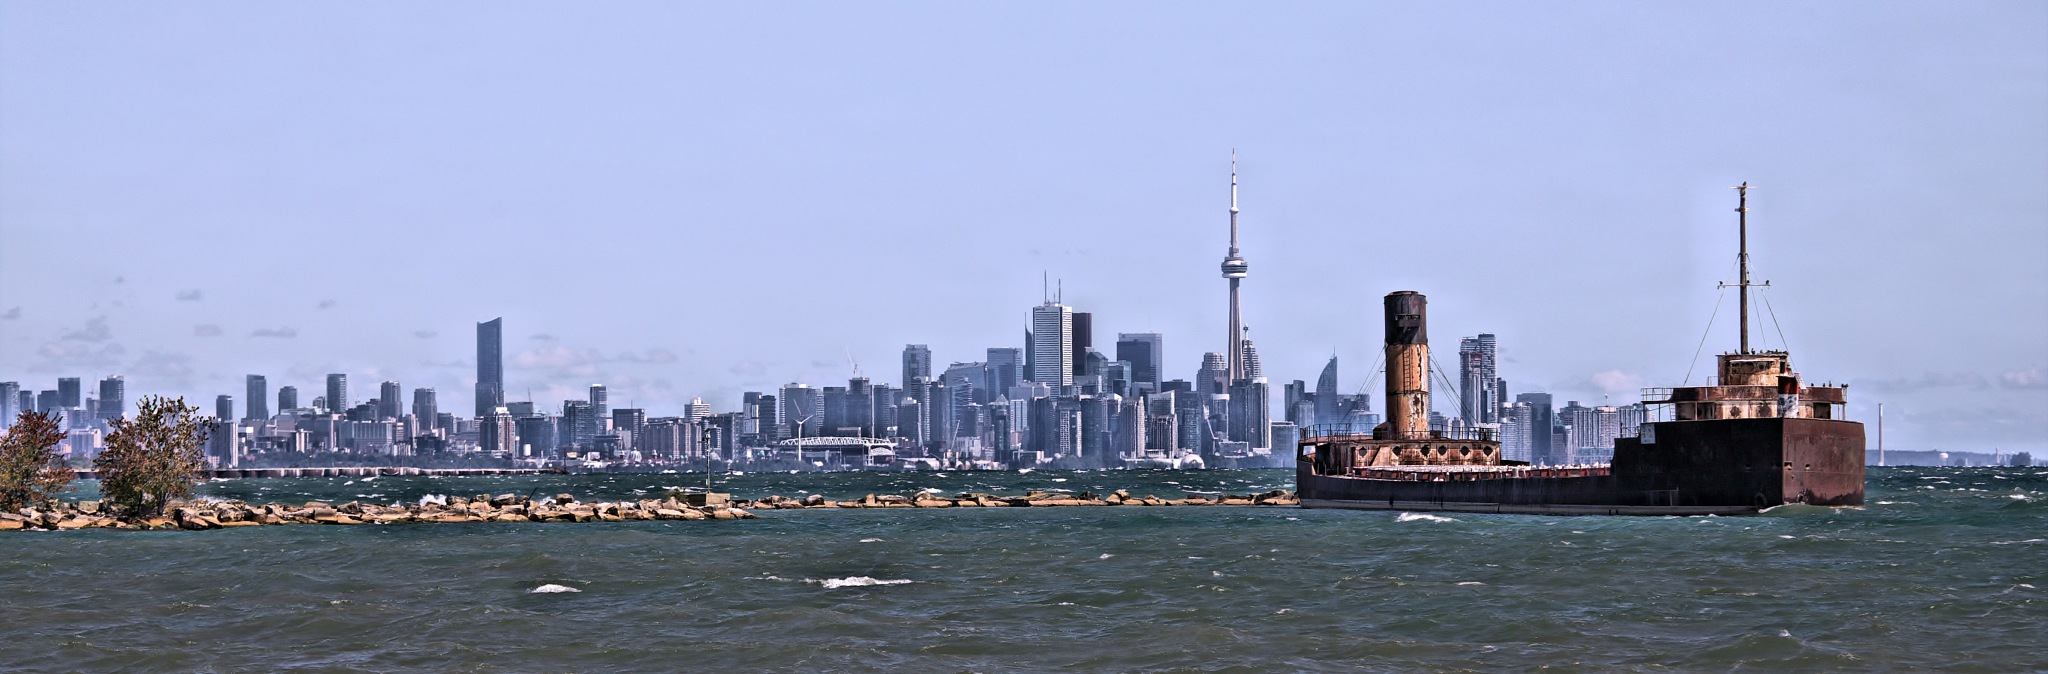 Toronto from Port Credit.. by Roland Lavigne